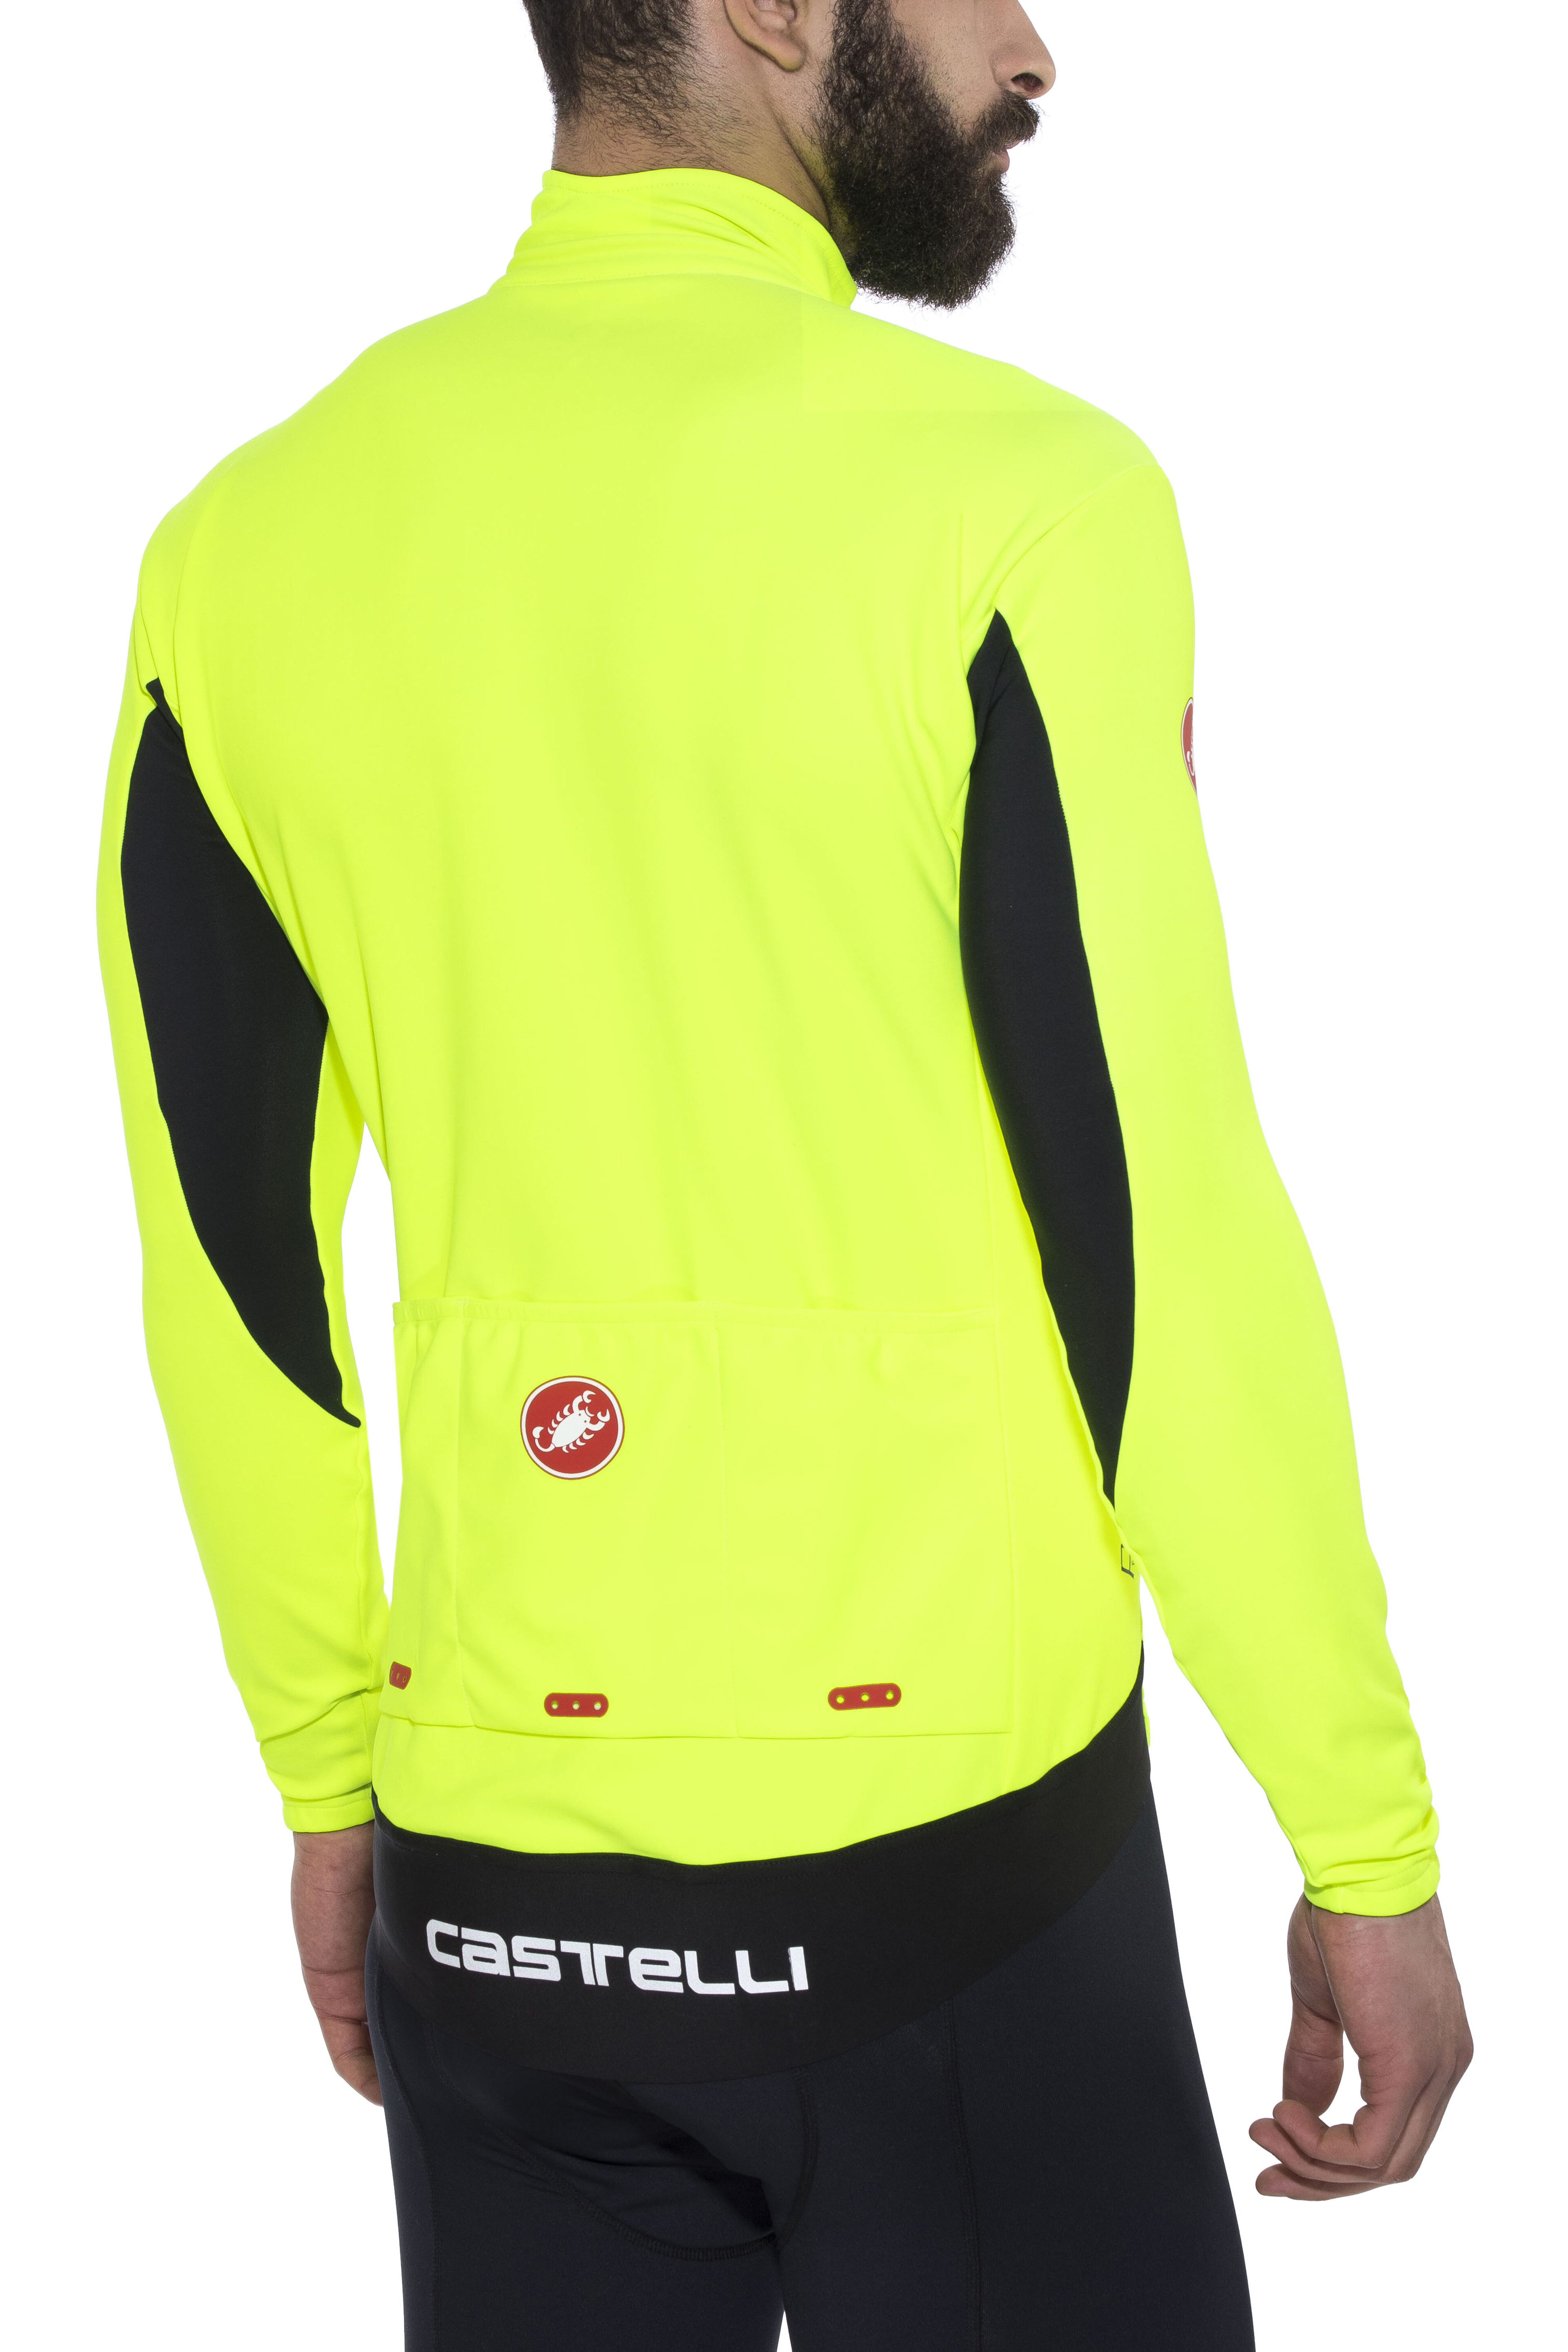 Castelli Perfetto Bike Jersey Longsleeve Men yellow at Bikester.co.uk 505d22e12